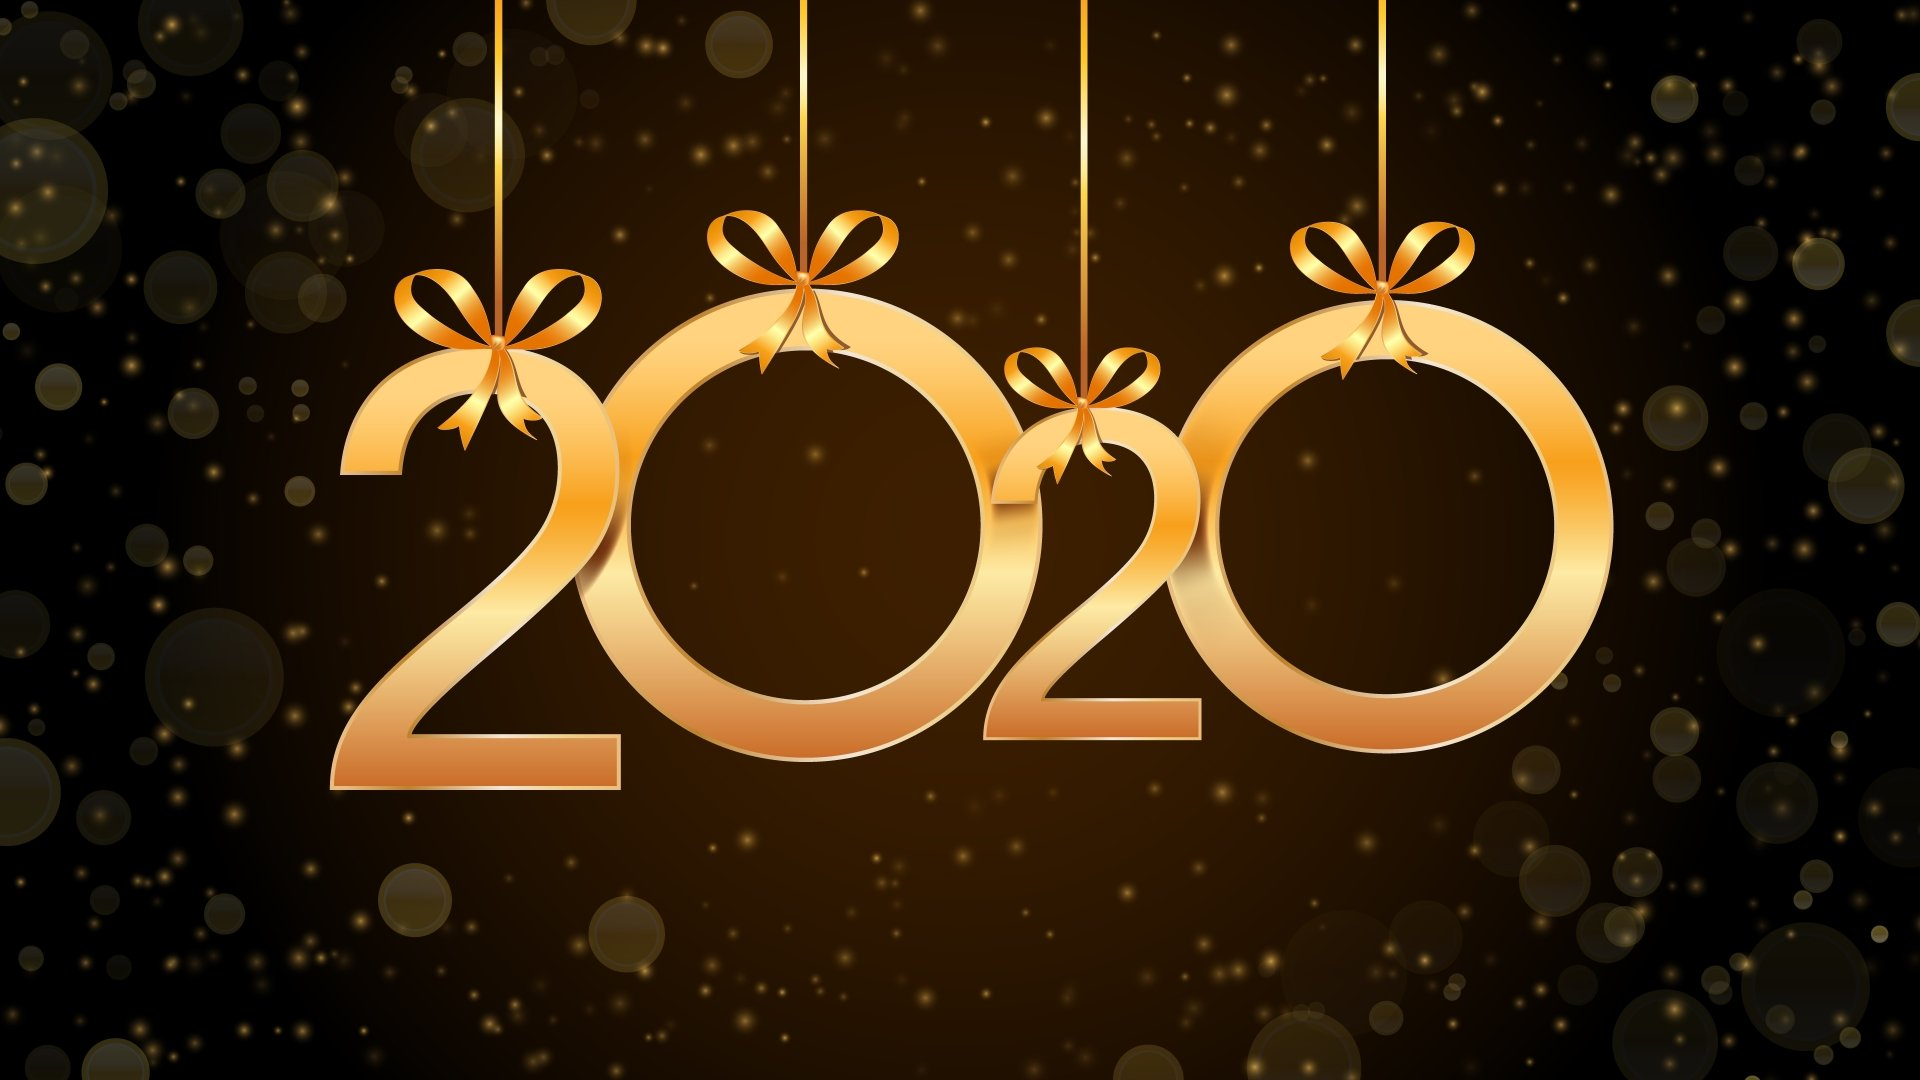 new year wallpaper,text,font,christmas eve,graphic design,illustration